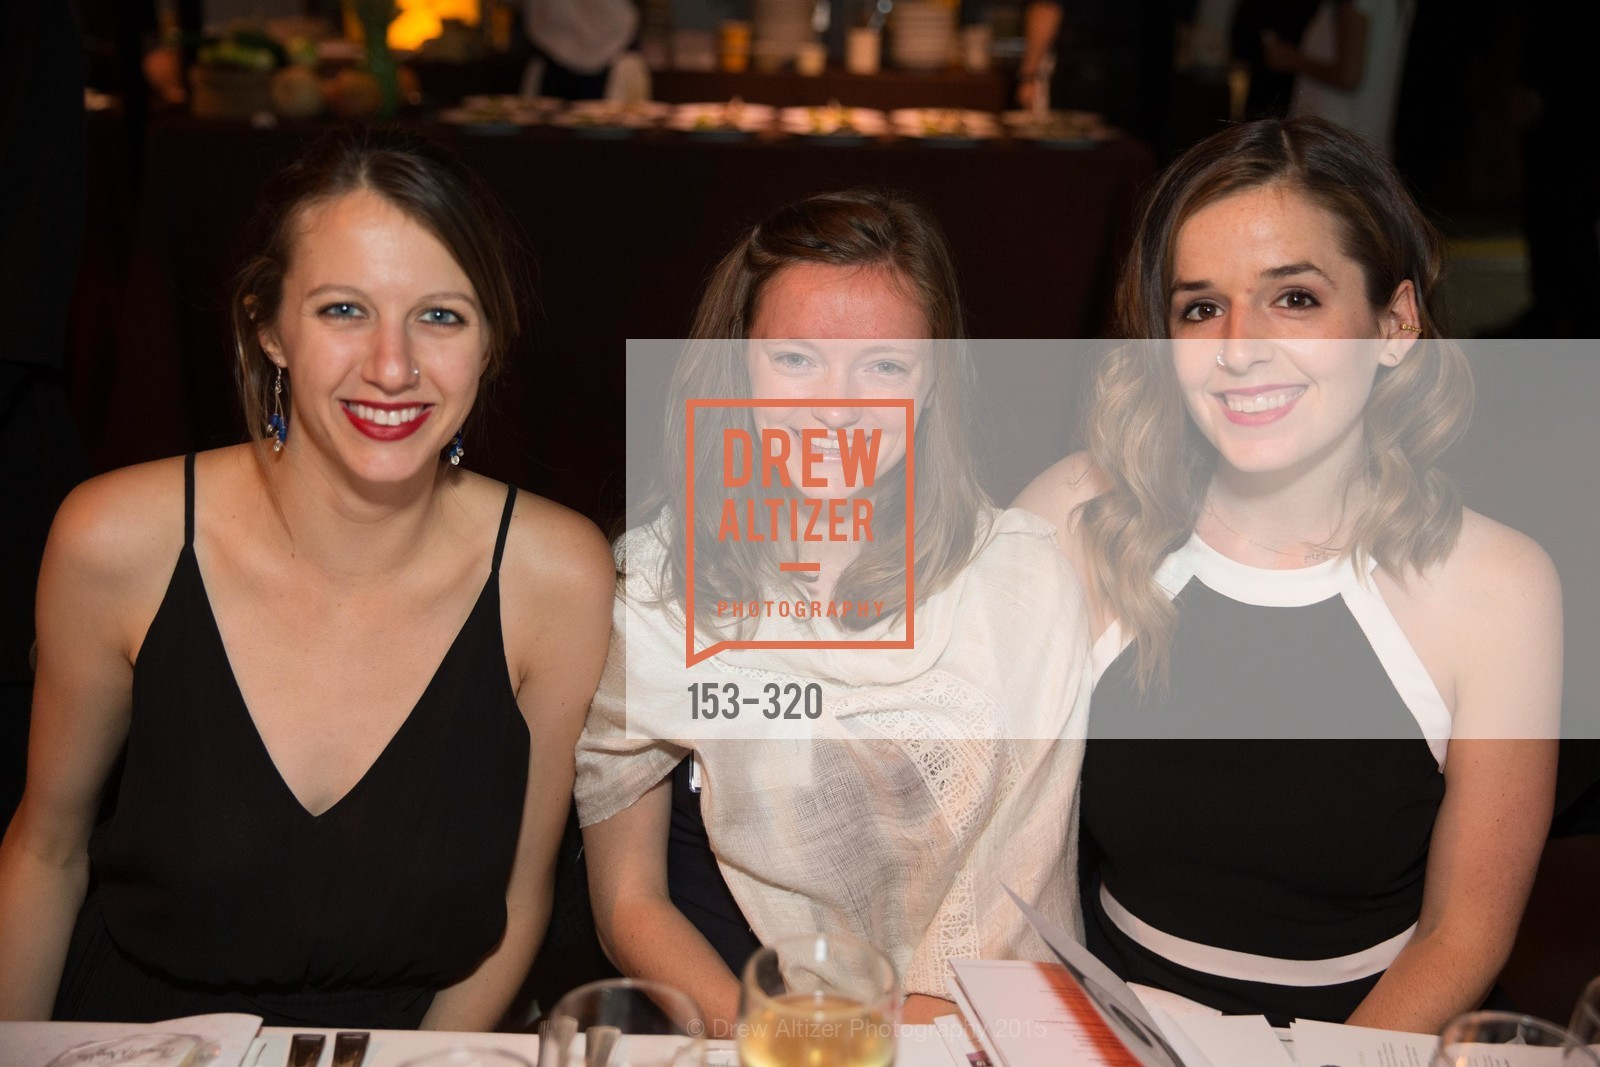 Kate Schaff, Maddy Traynor, Jessica Bronson, SF - Marin Food Bank Presents ONE BIG TABLE, SF- Marin Food Bank. 900 Pennsylvania Ave, September 26th, 2015,Drew Altizer, Drew Altizer Photography, full-service agency, private events, San Francisco photographer, photographer california